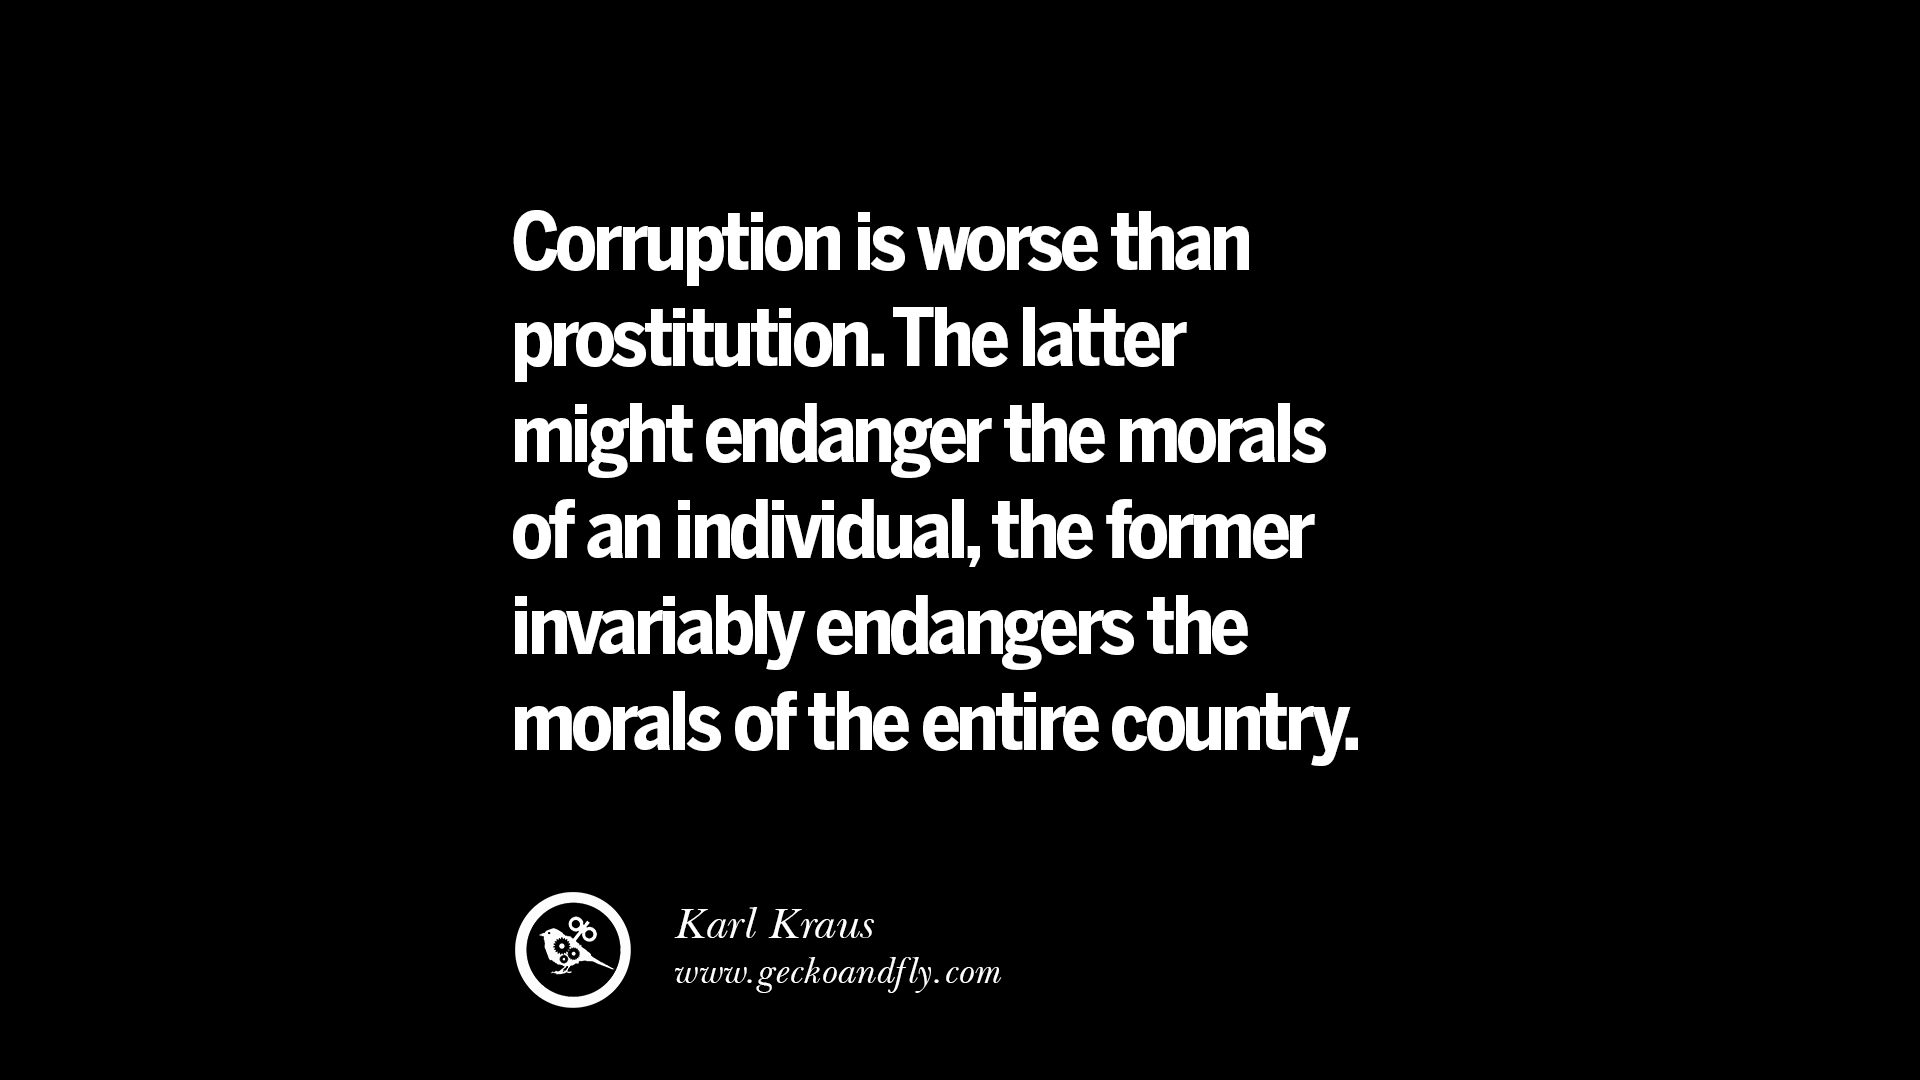 Positive Christian Quotes 30 Anti Corruption Quotes For Politicians On Greed And Power